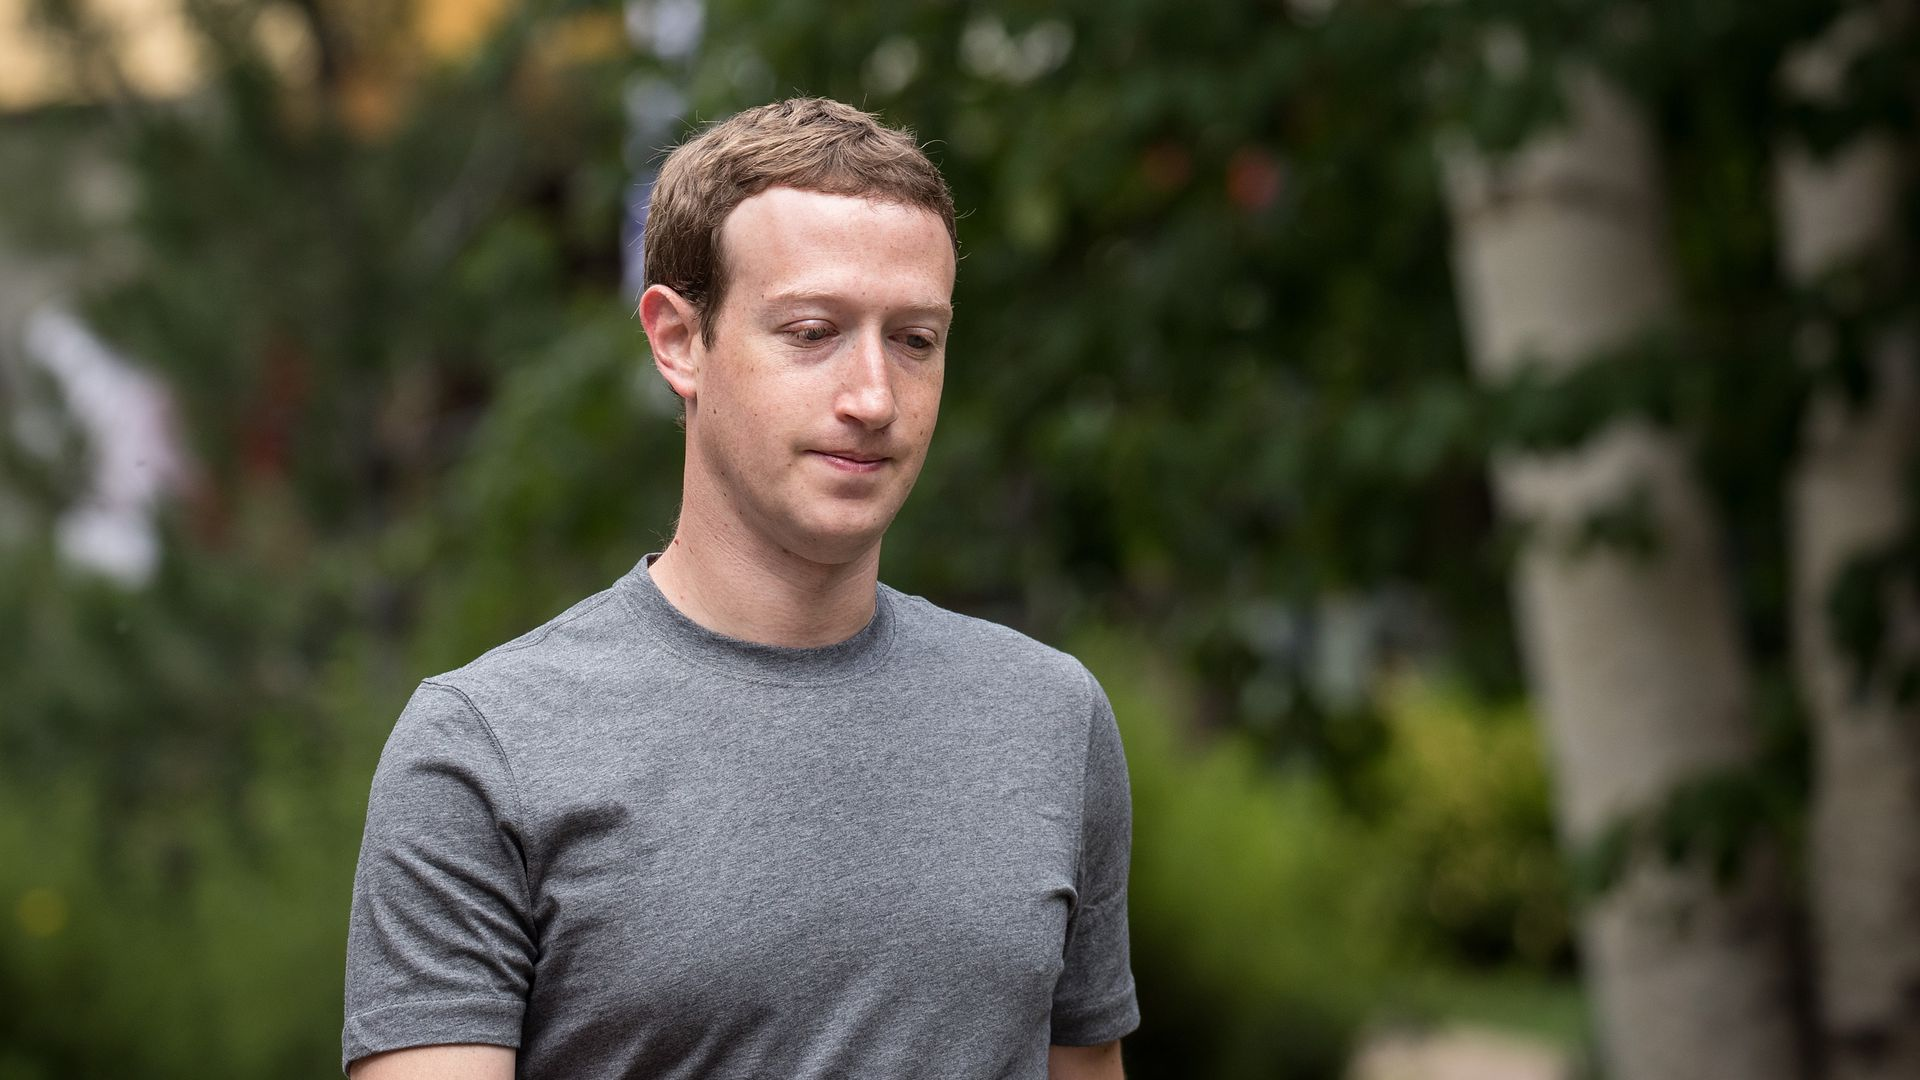 Facebook CEO Mark Zuckerberg walks with trees behind him